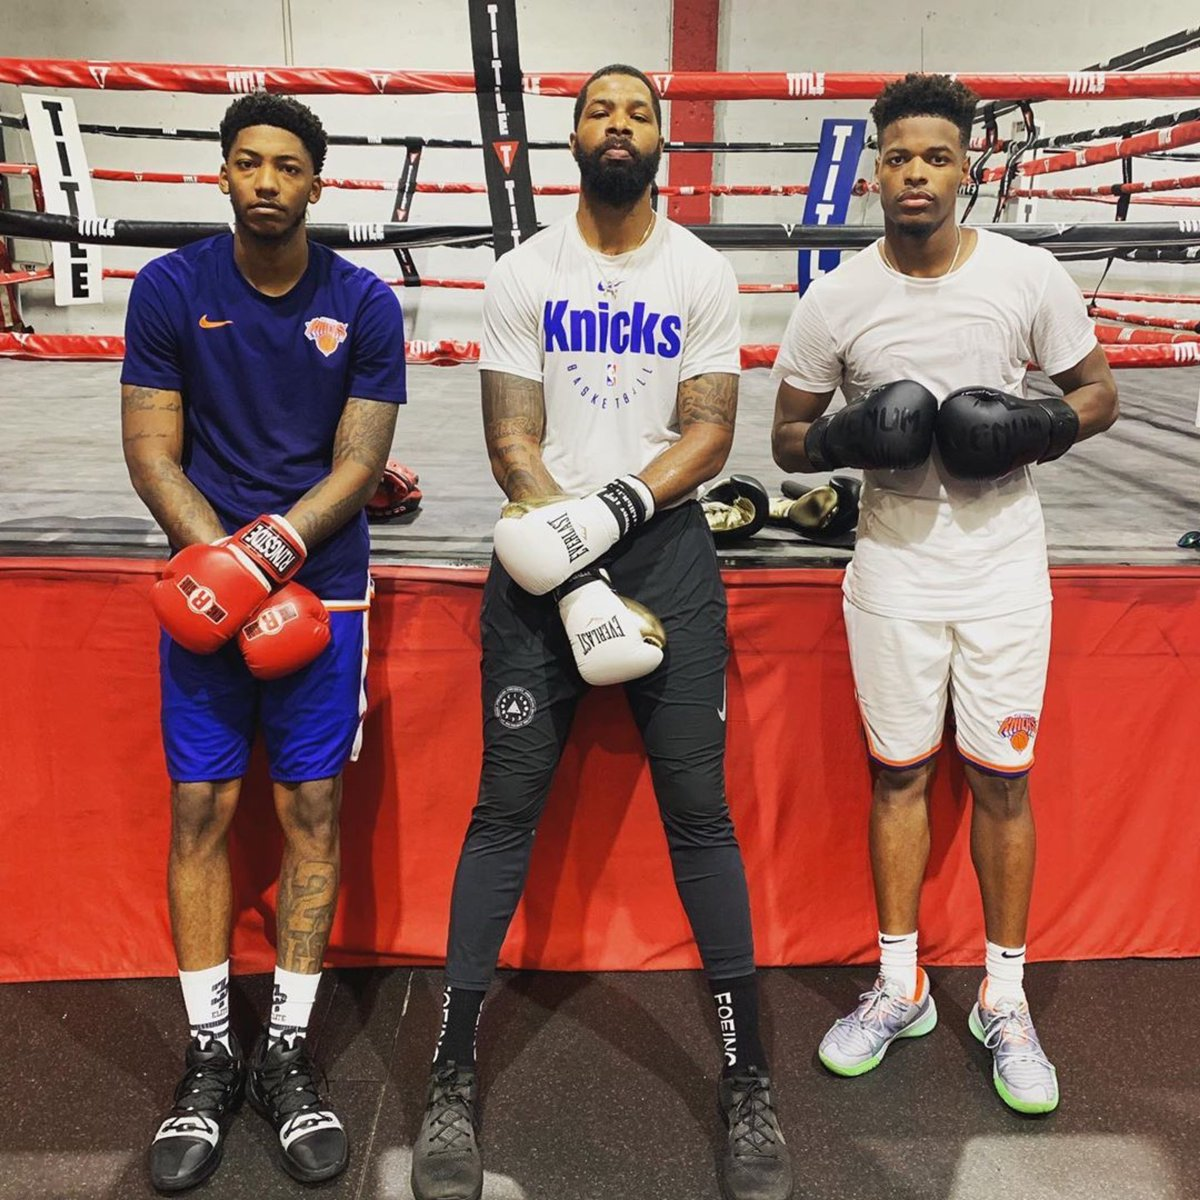 Meet us in the ring 🥊😤